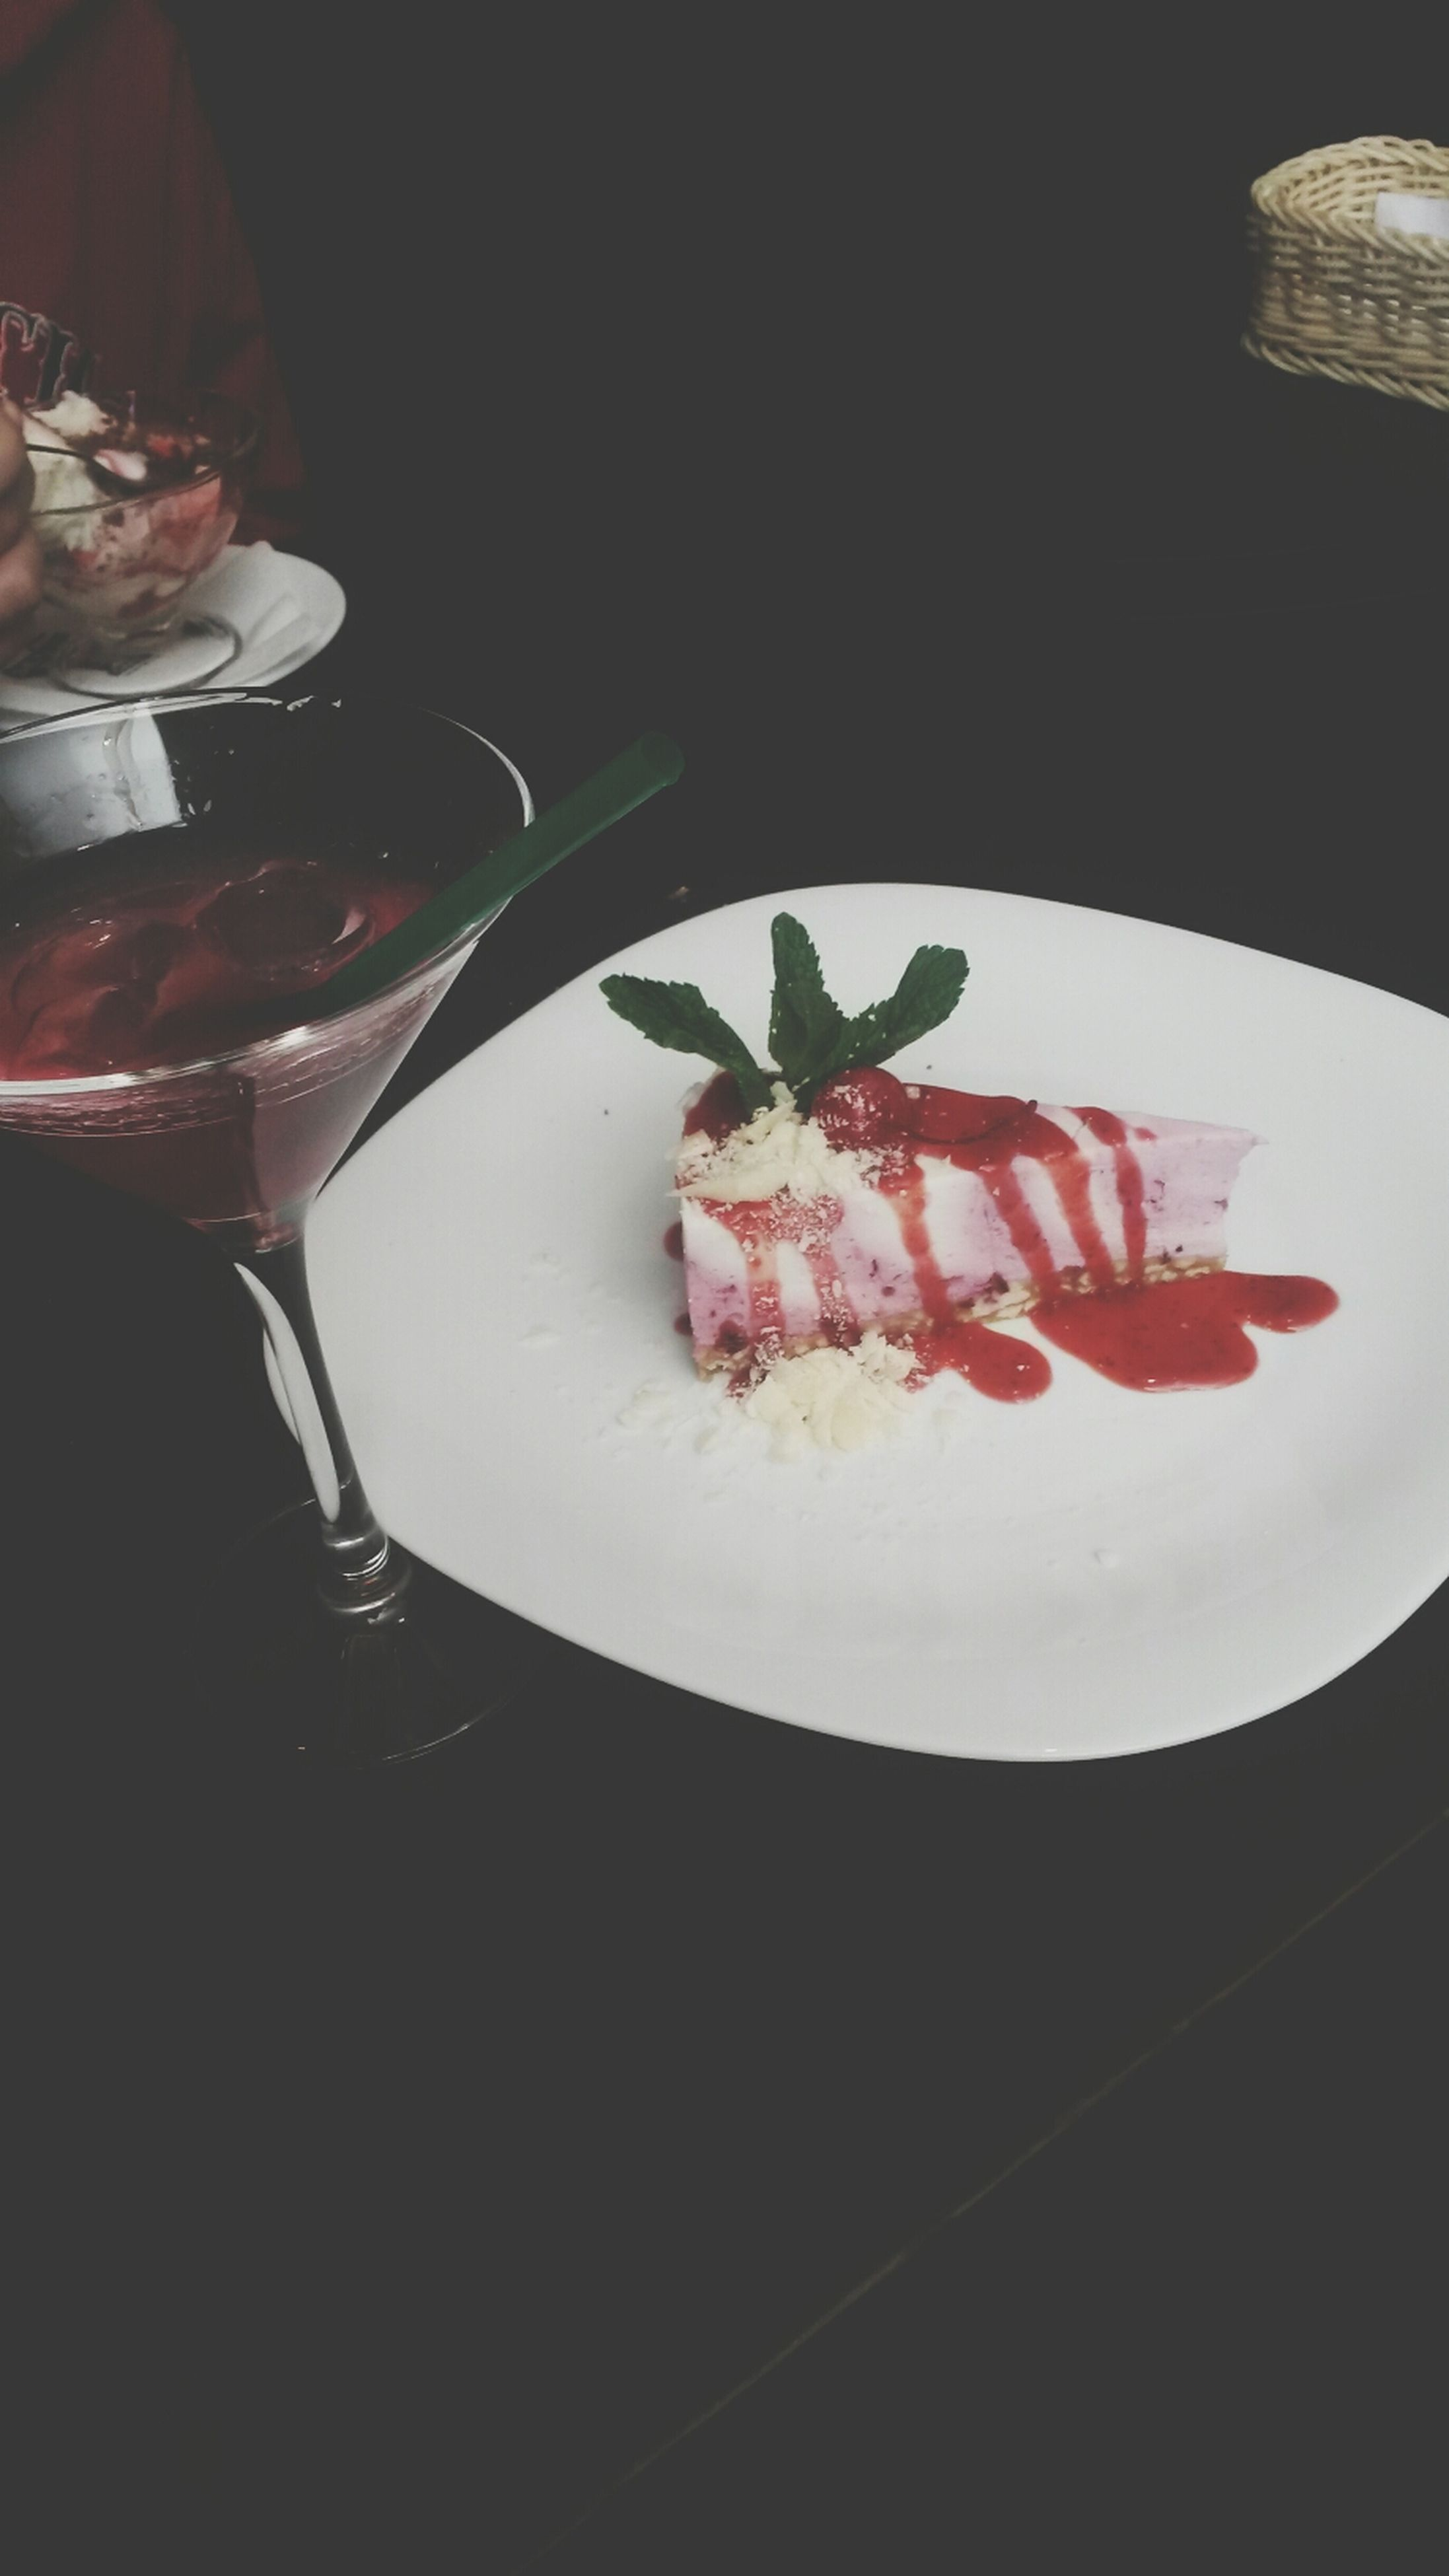 food and drink, freshness, food, indoors, ready-to-eat, indulgence, sweet food, plate, still life, close-up, table, dessert, red, unhealthy eating, temptation, cake, high angle view, strawberry, fruit